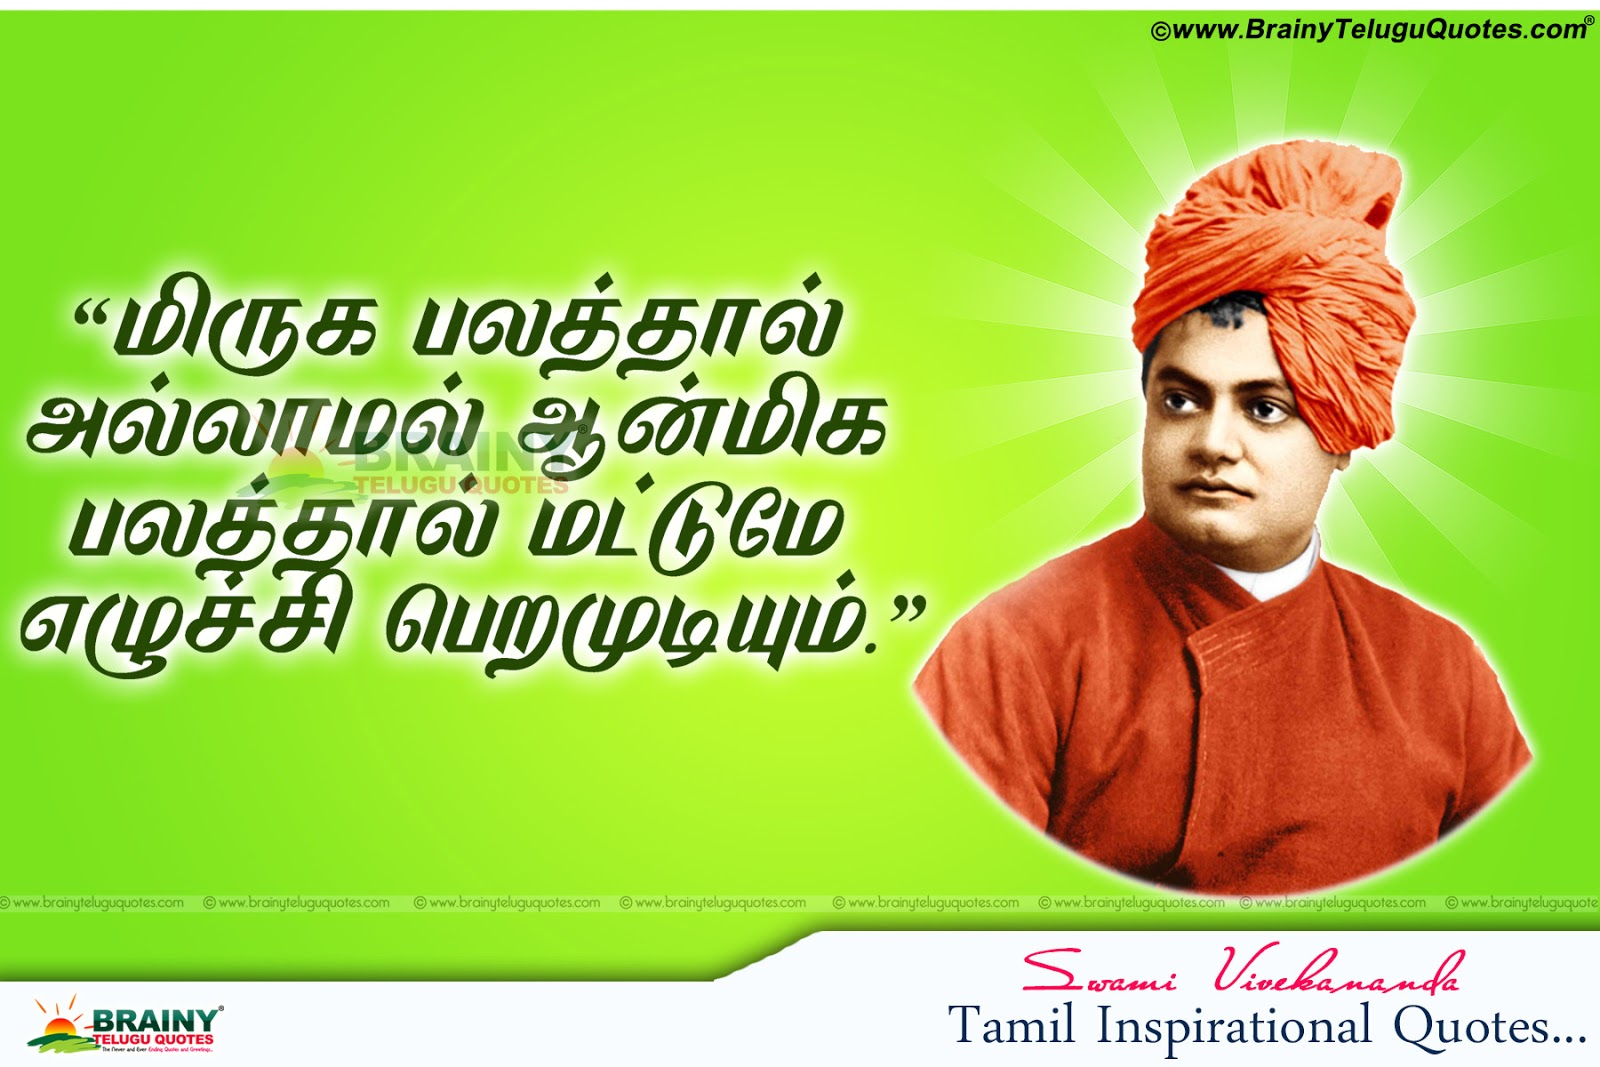 swami vivekananda nice tamil inspirational quotations and